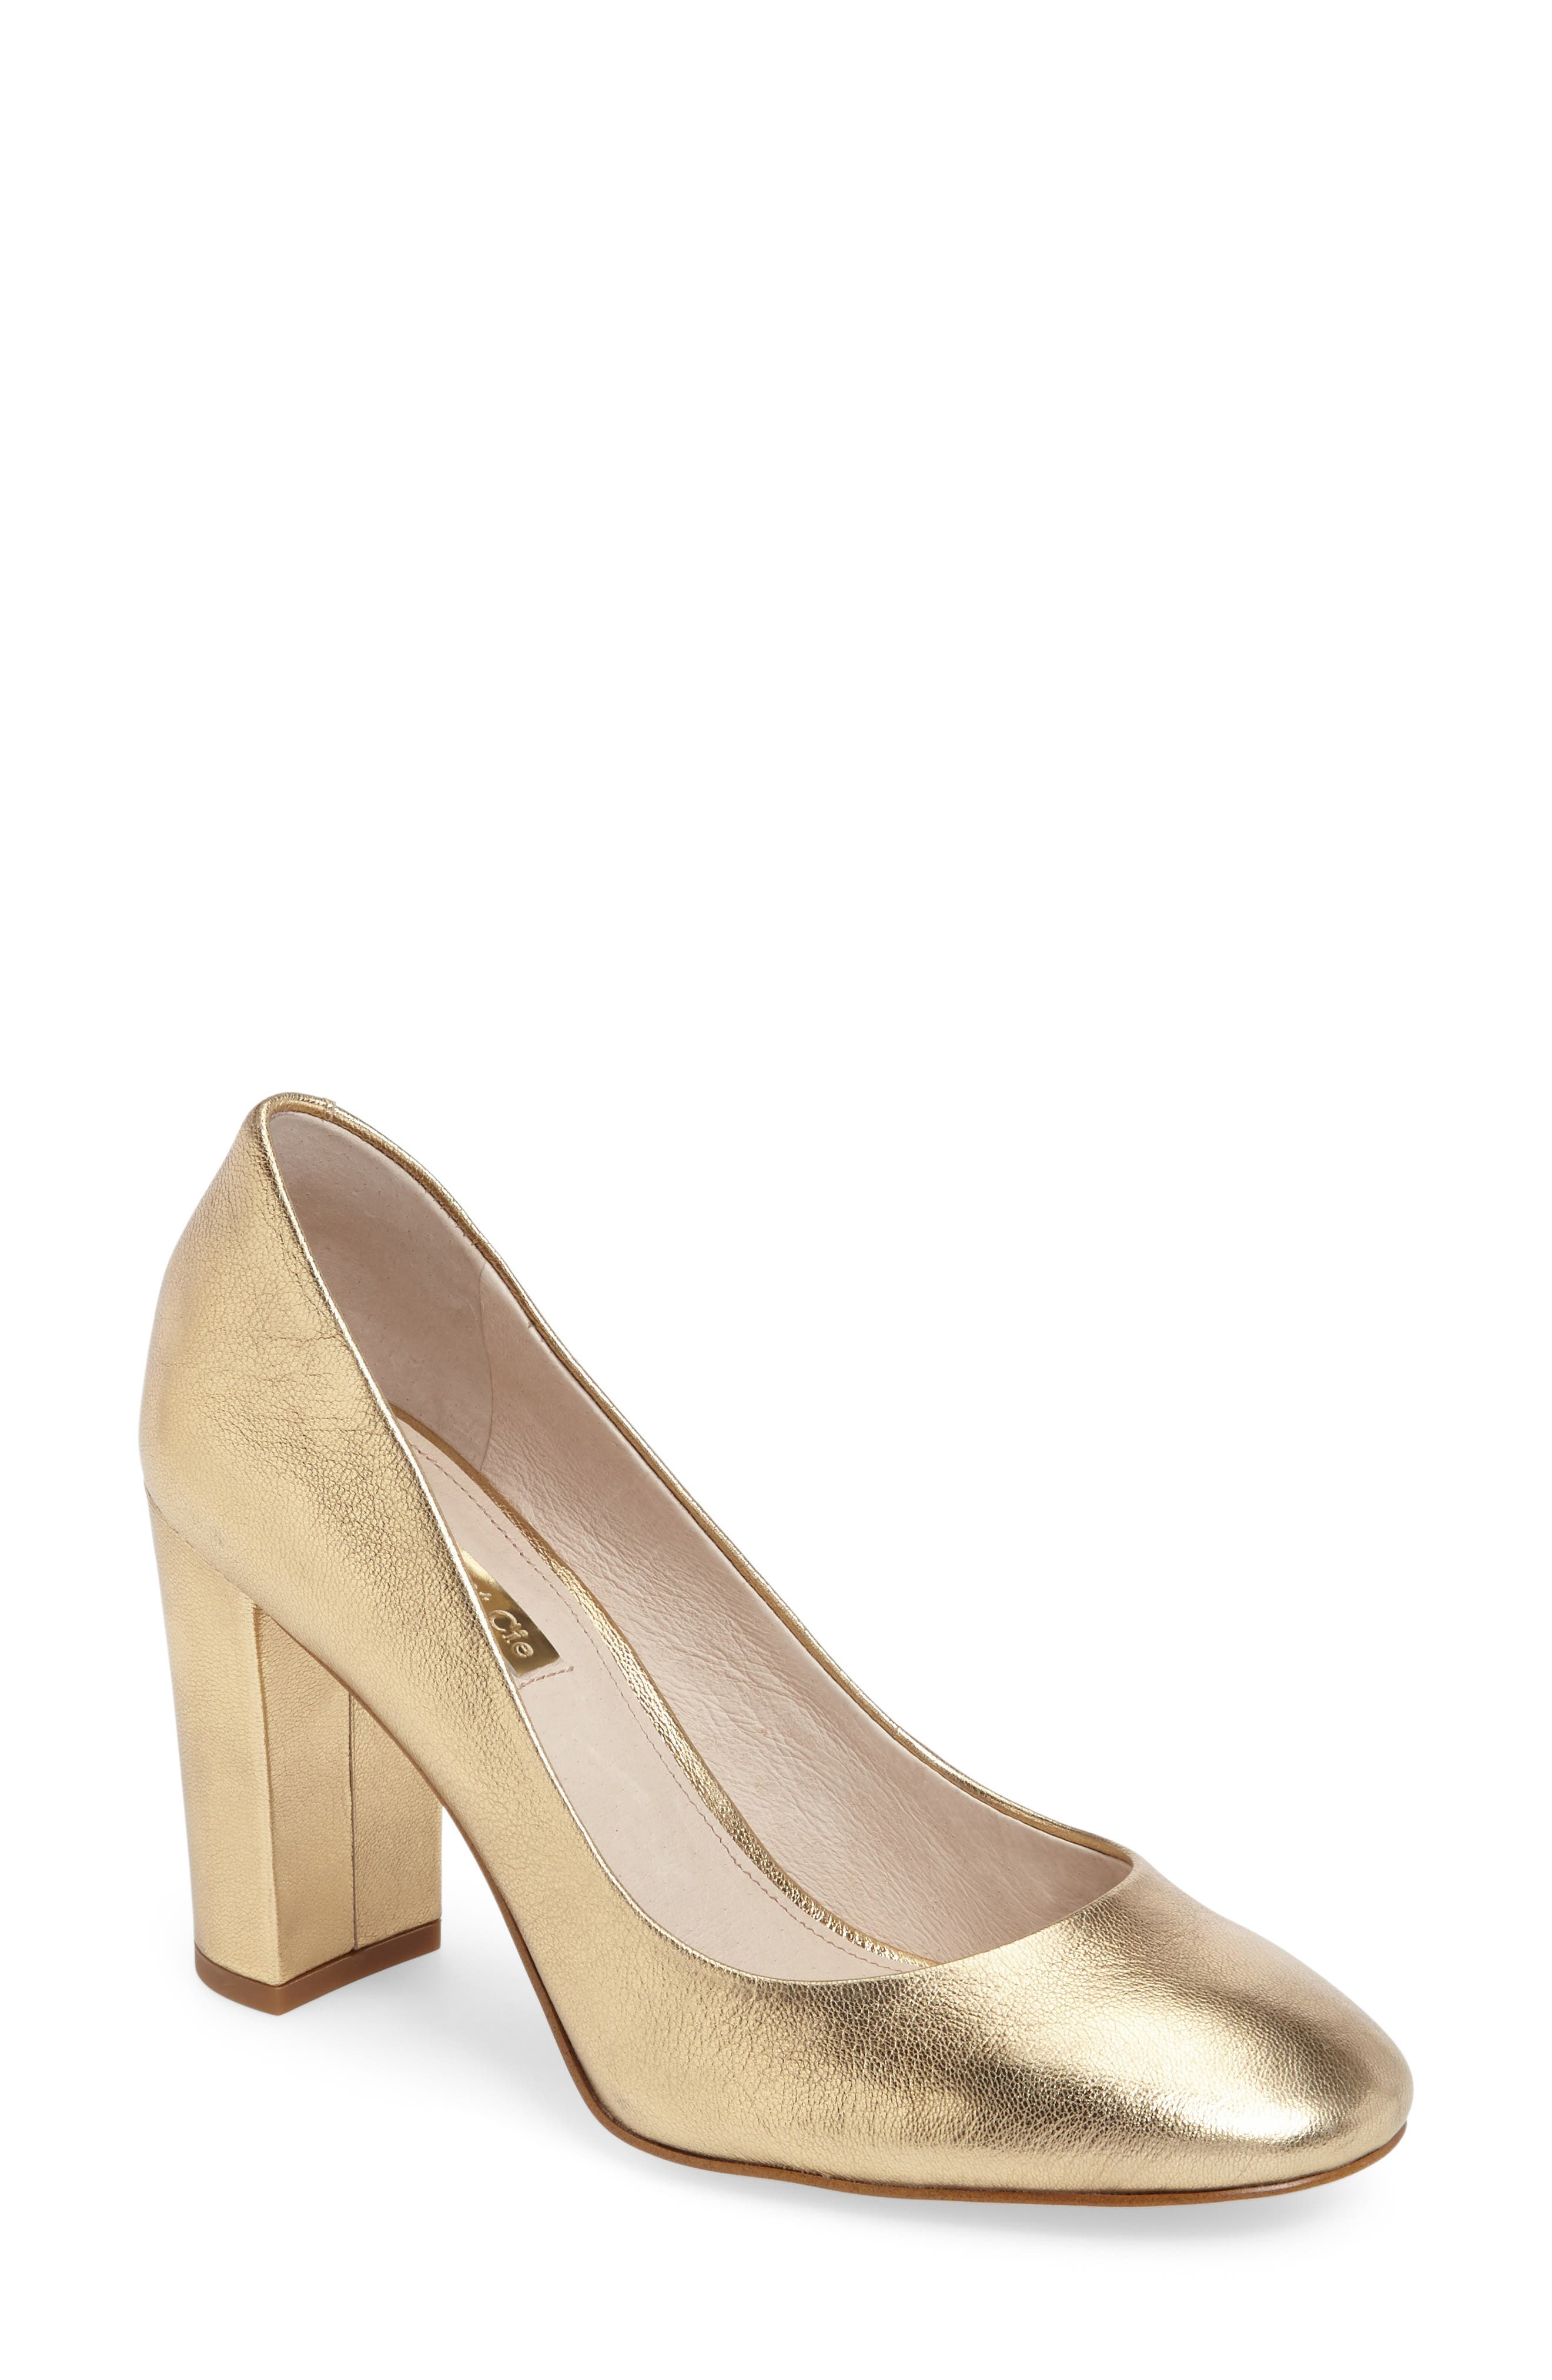 Jianna Stacked Heel Pump,                             Main thumbnail 1, color,                             Gilded Gold Leather